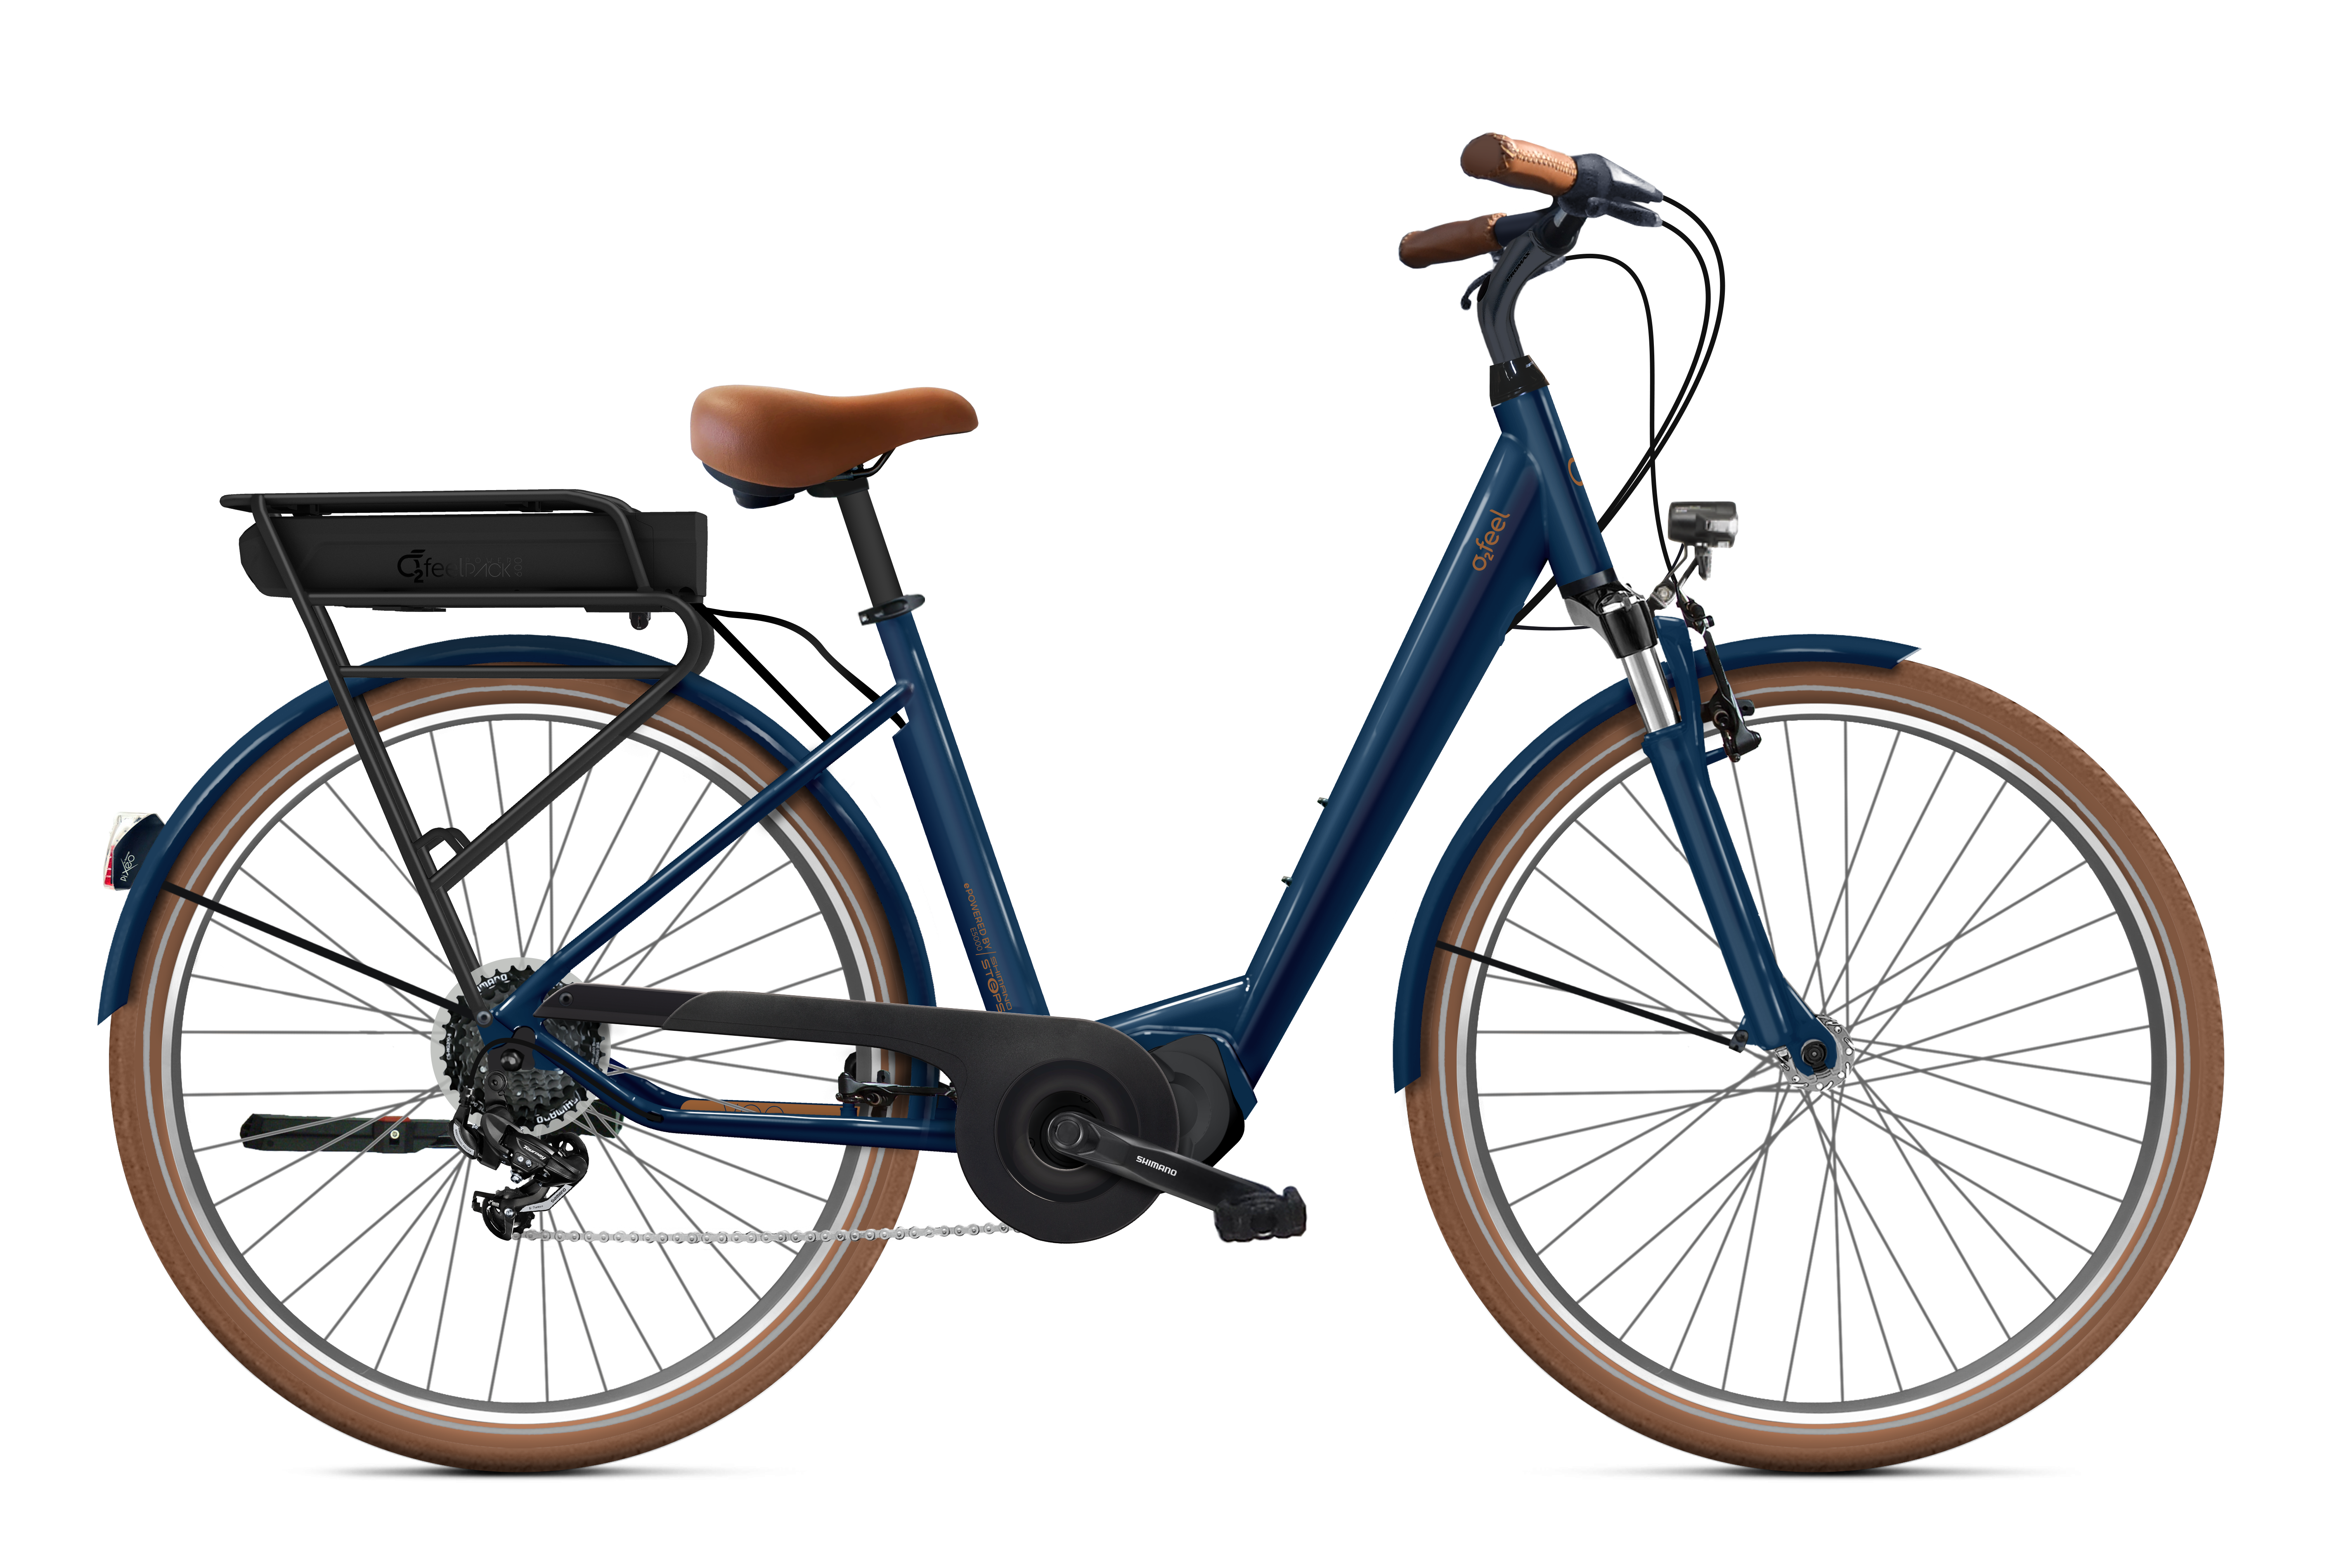 https://w8w5m3f8.stackpathcdn.com/21282/velo-electrique-urbain-vog-city-up-31-400-ou-600wh.jpg